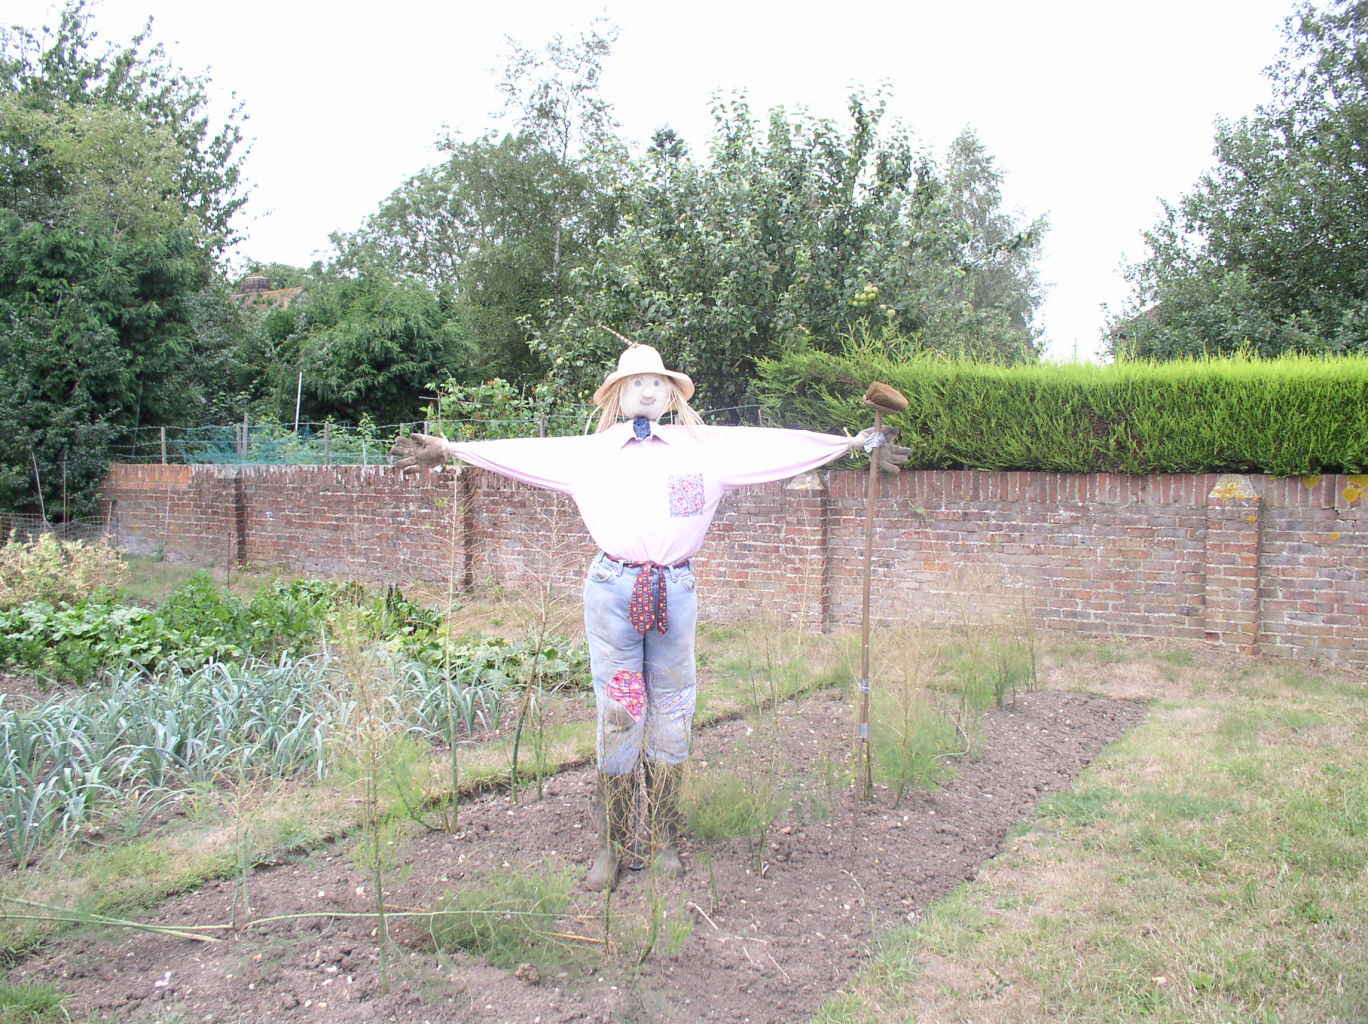 Scarecrow in jeans, shirt and boots in an allotment.